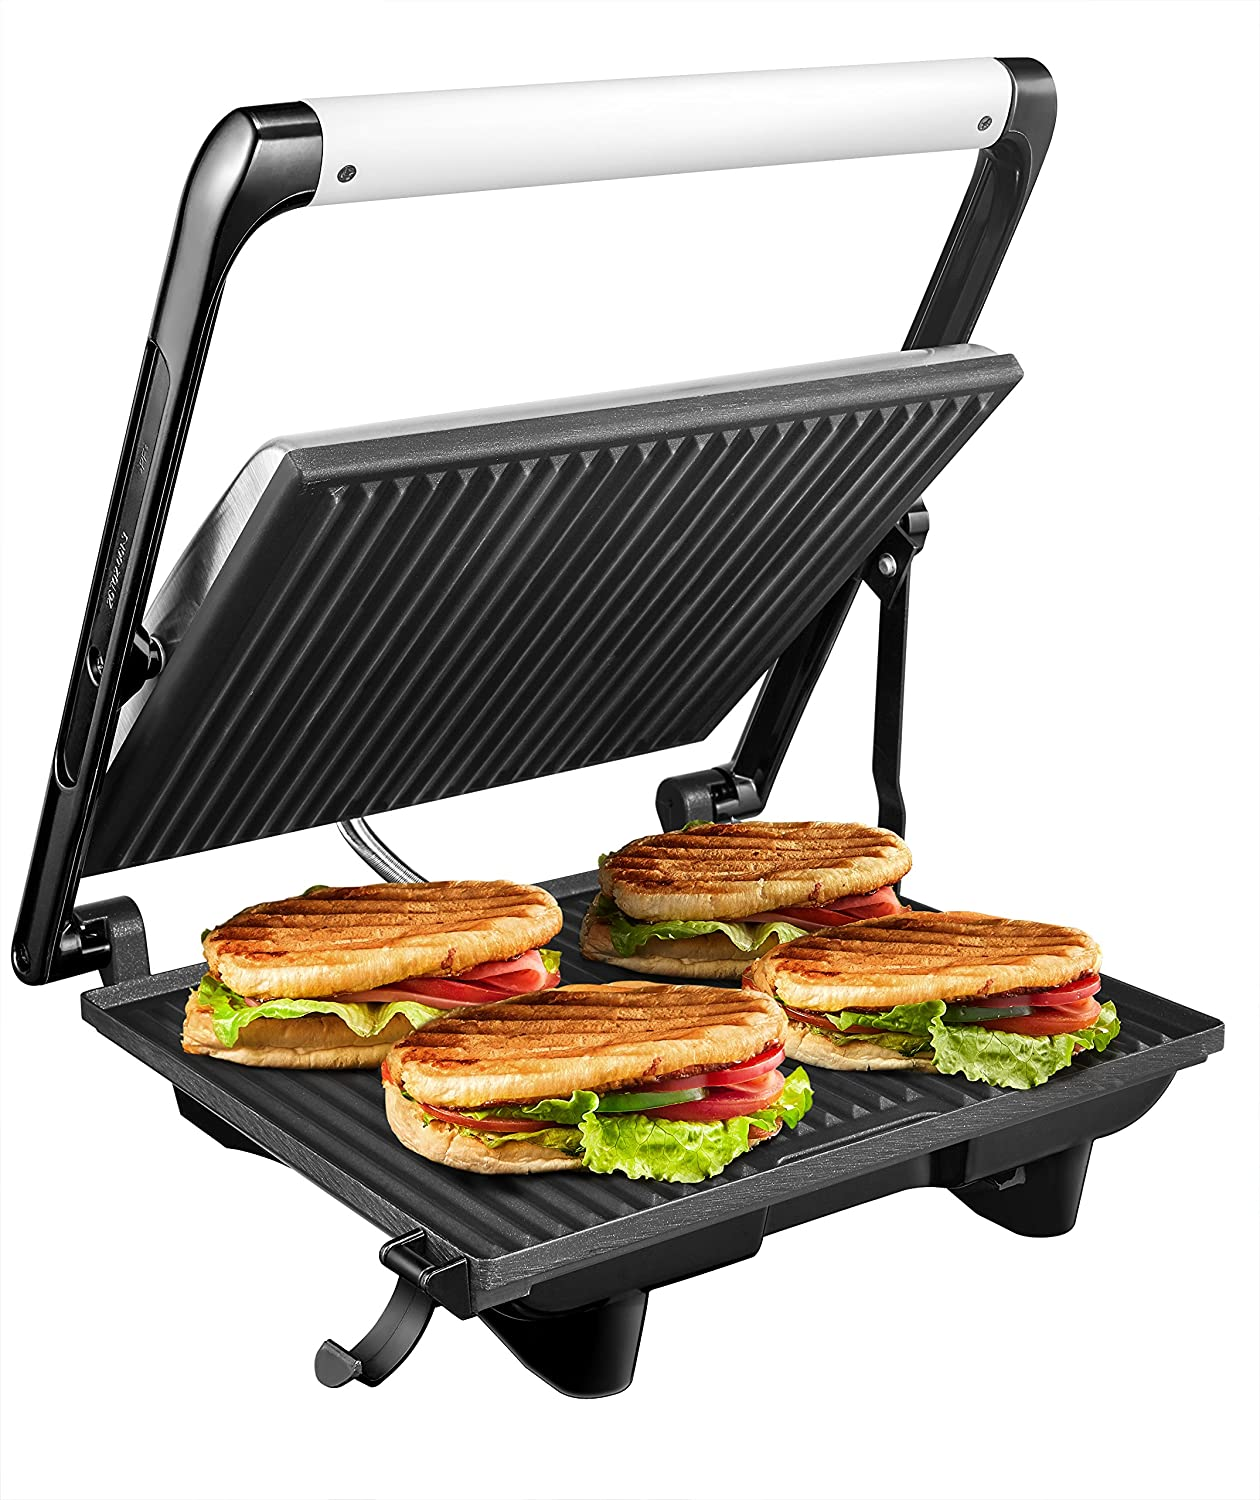 Panini Press Gourmet Sandwich Maker, 4-Slice Extra Large Panini Press Grill with Non-Stick Coated Plates and Removable Drip Tray, Stainless Steel, 1200W